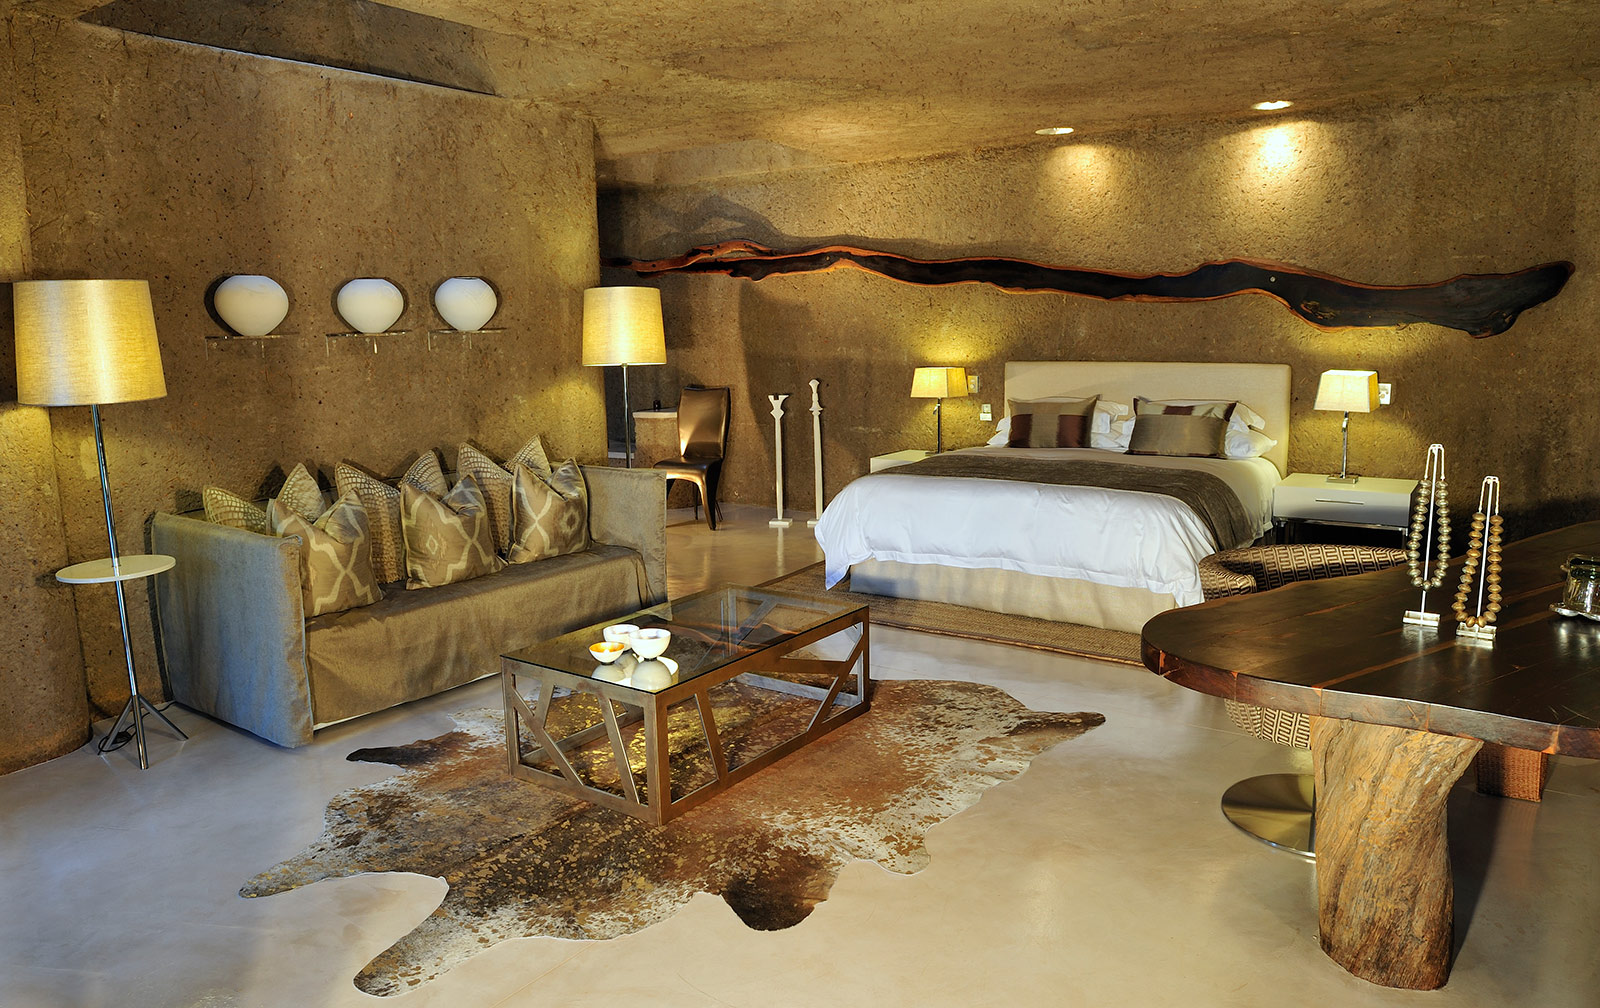 SABI SABI EARTH LODGE - Sabi Sand, Africa